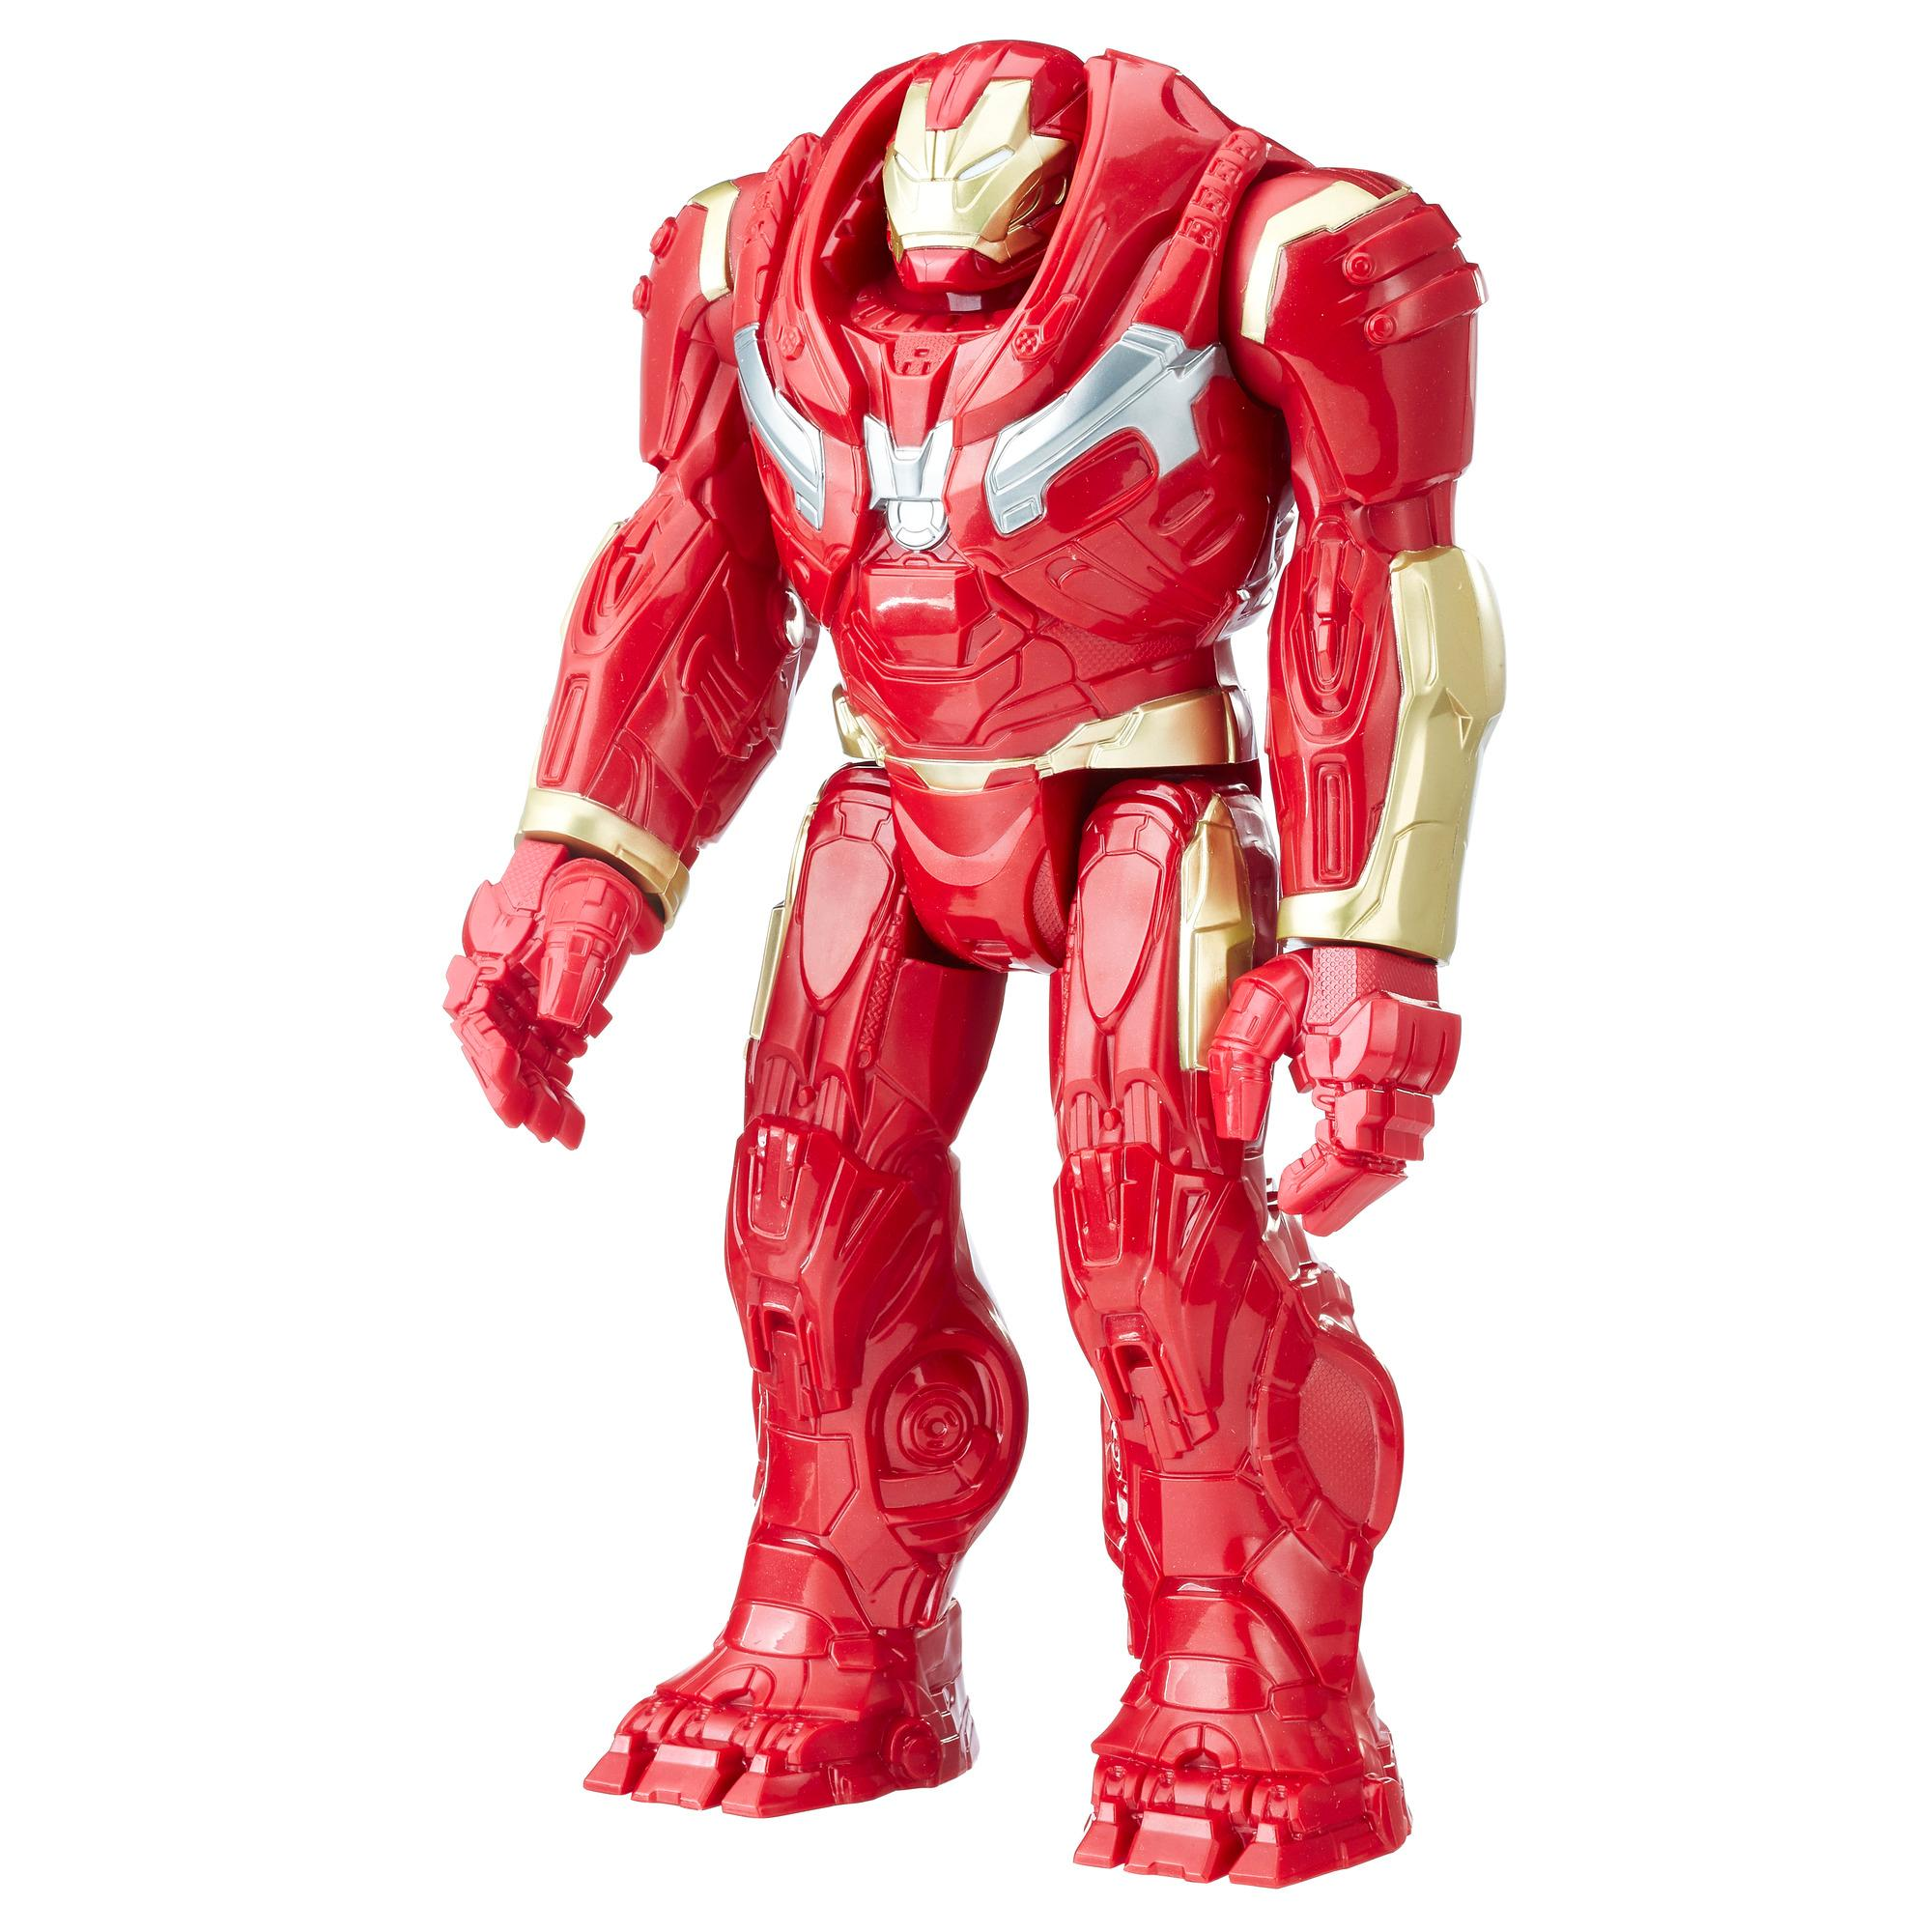 Marvel Infinity War Titan Hero Series - Hulkbuster con puerto para Titan Hero Power FX